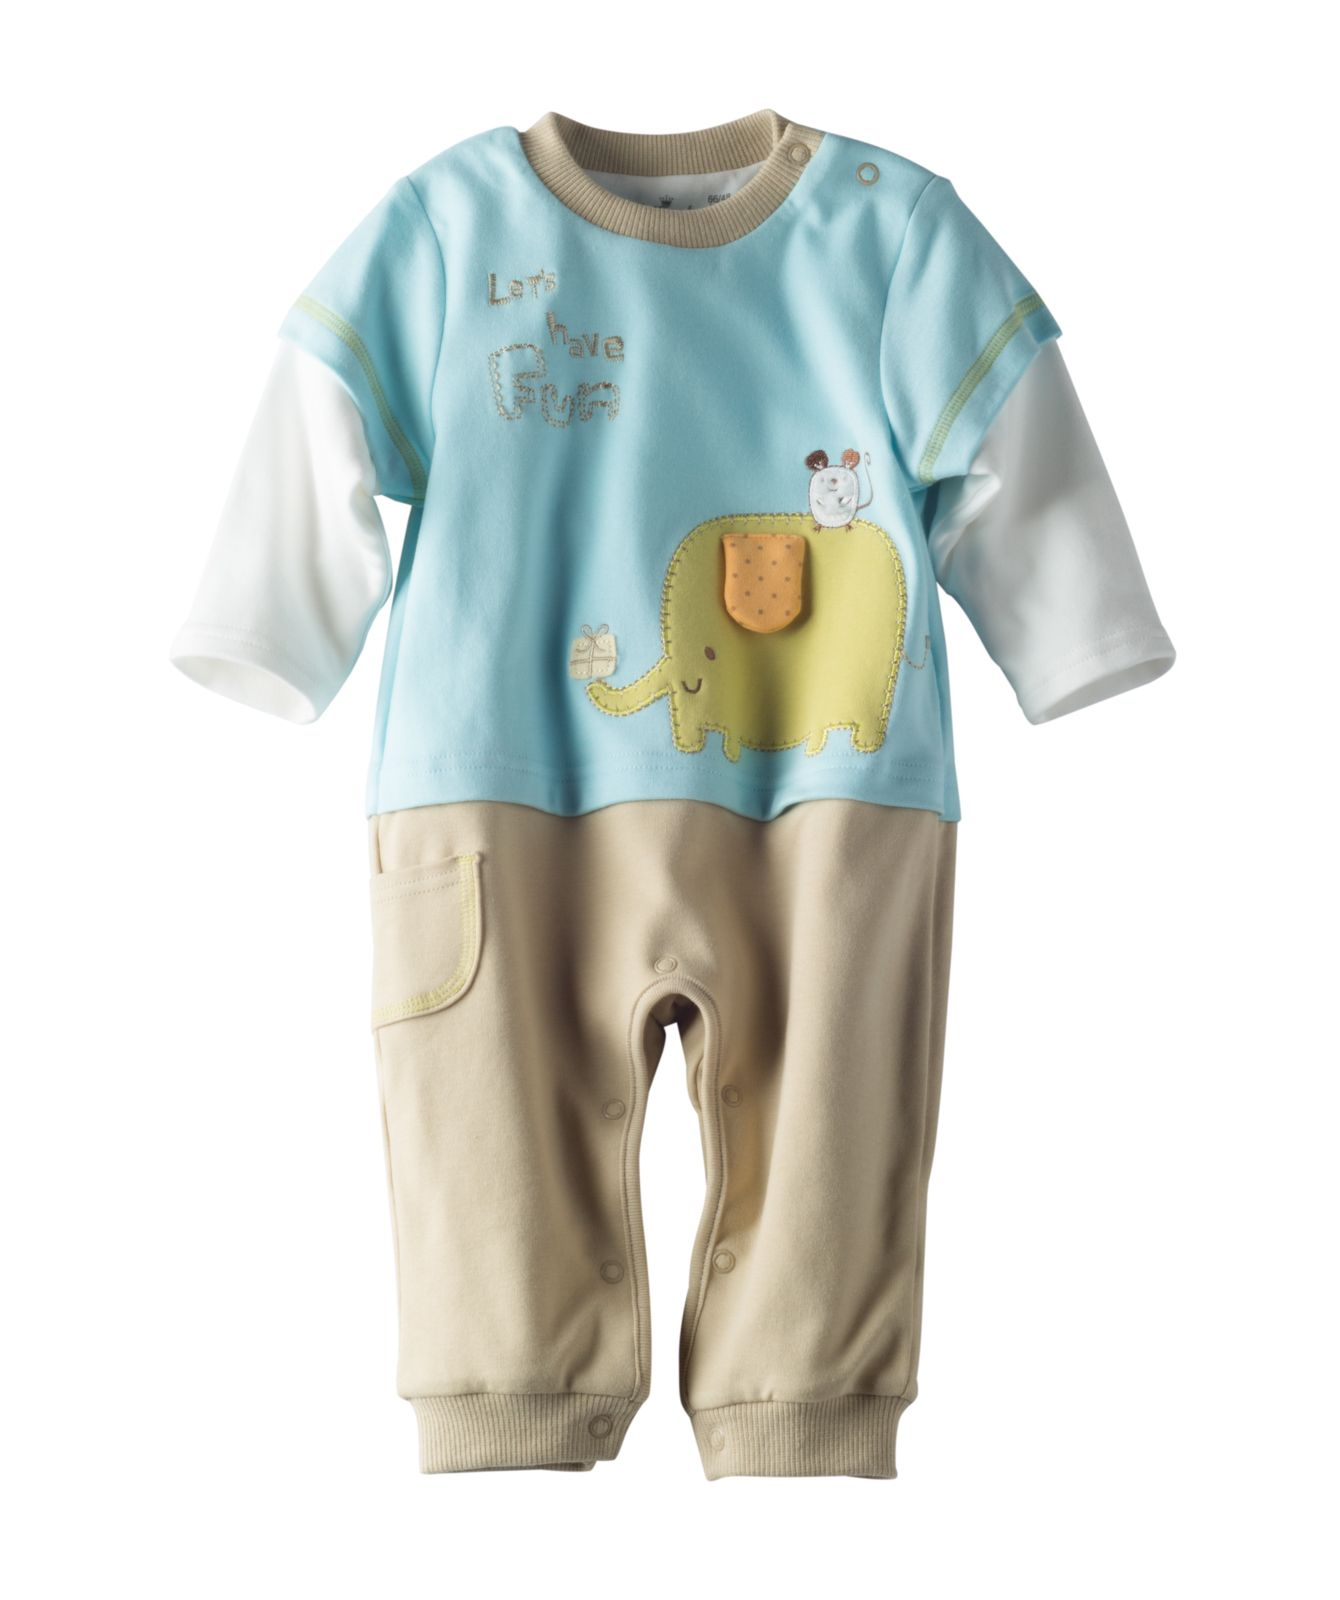 Every elephant needs a friend and this adorable one piece outfit is